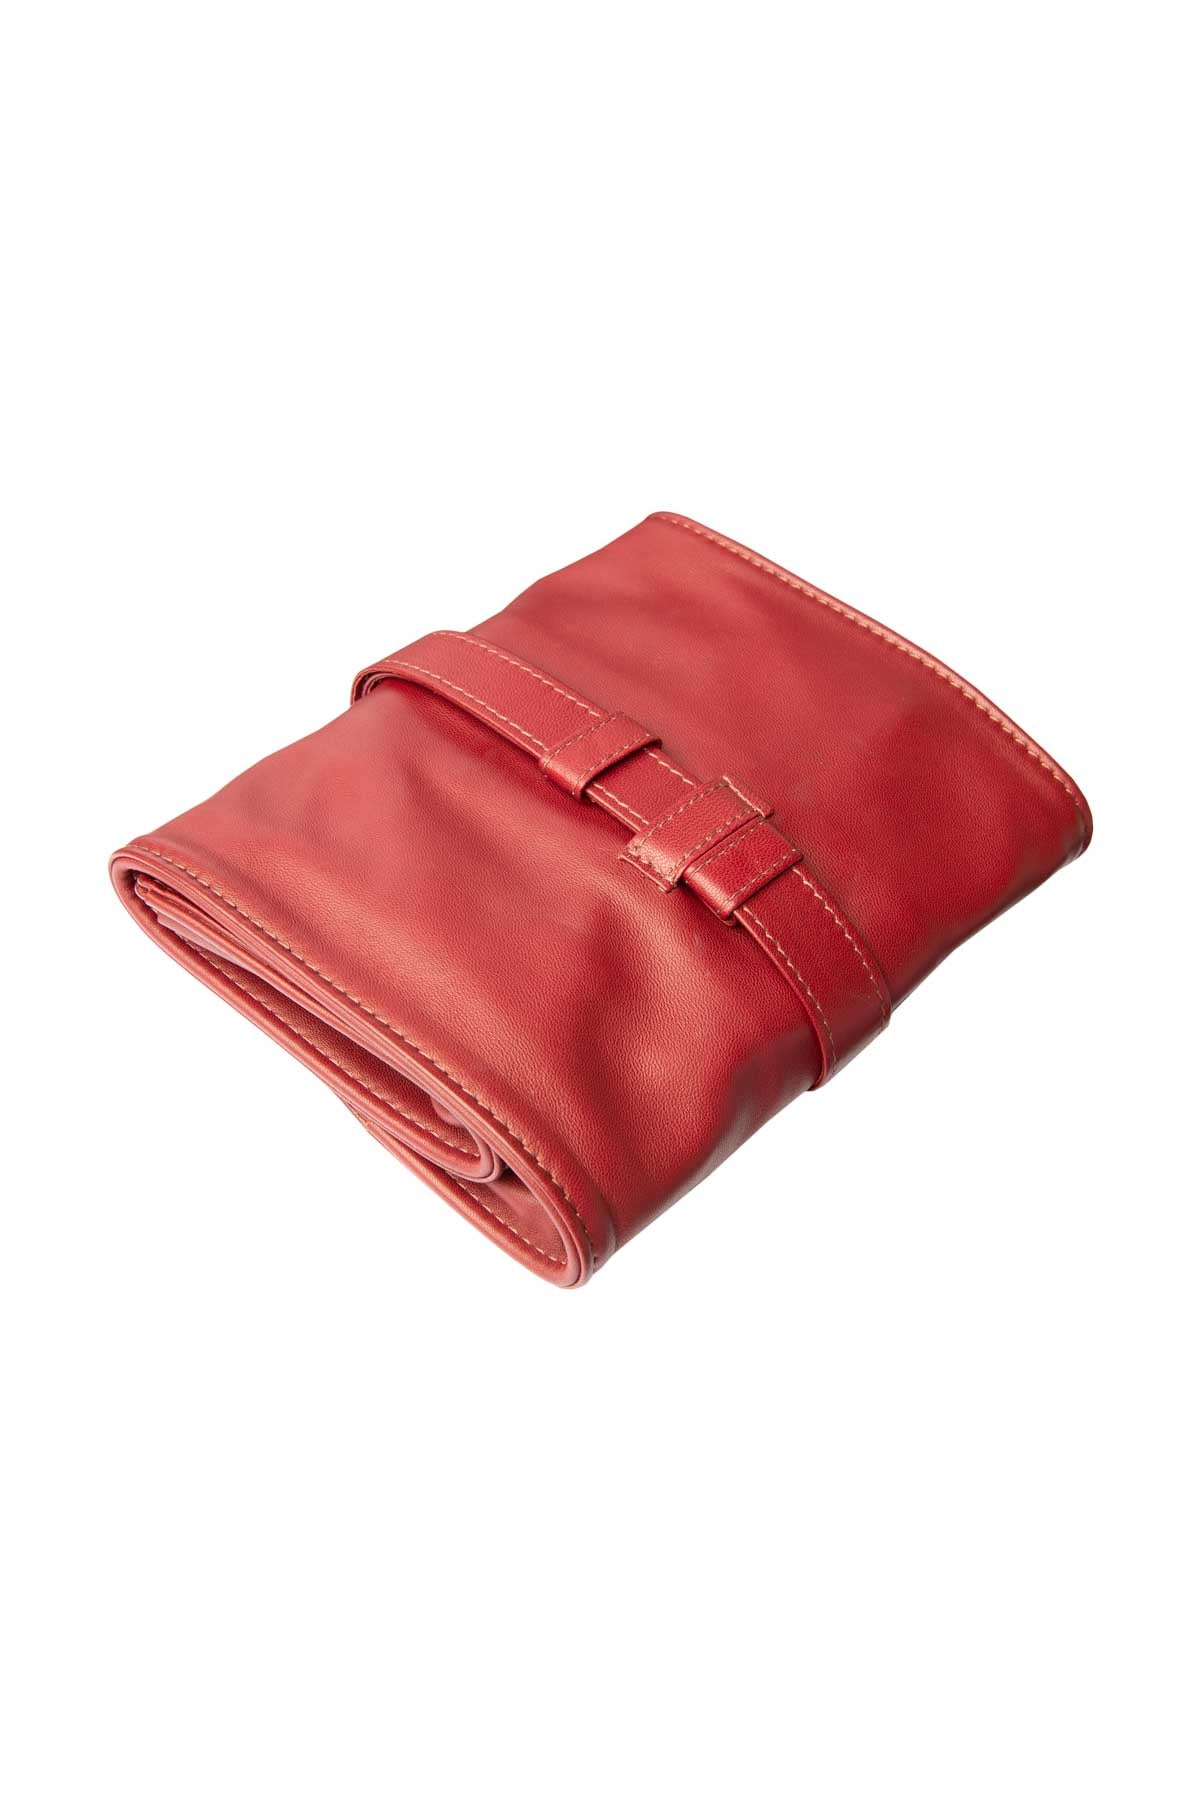 Lambskin Roll-Up Manicure Set - Burgundy